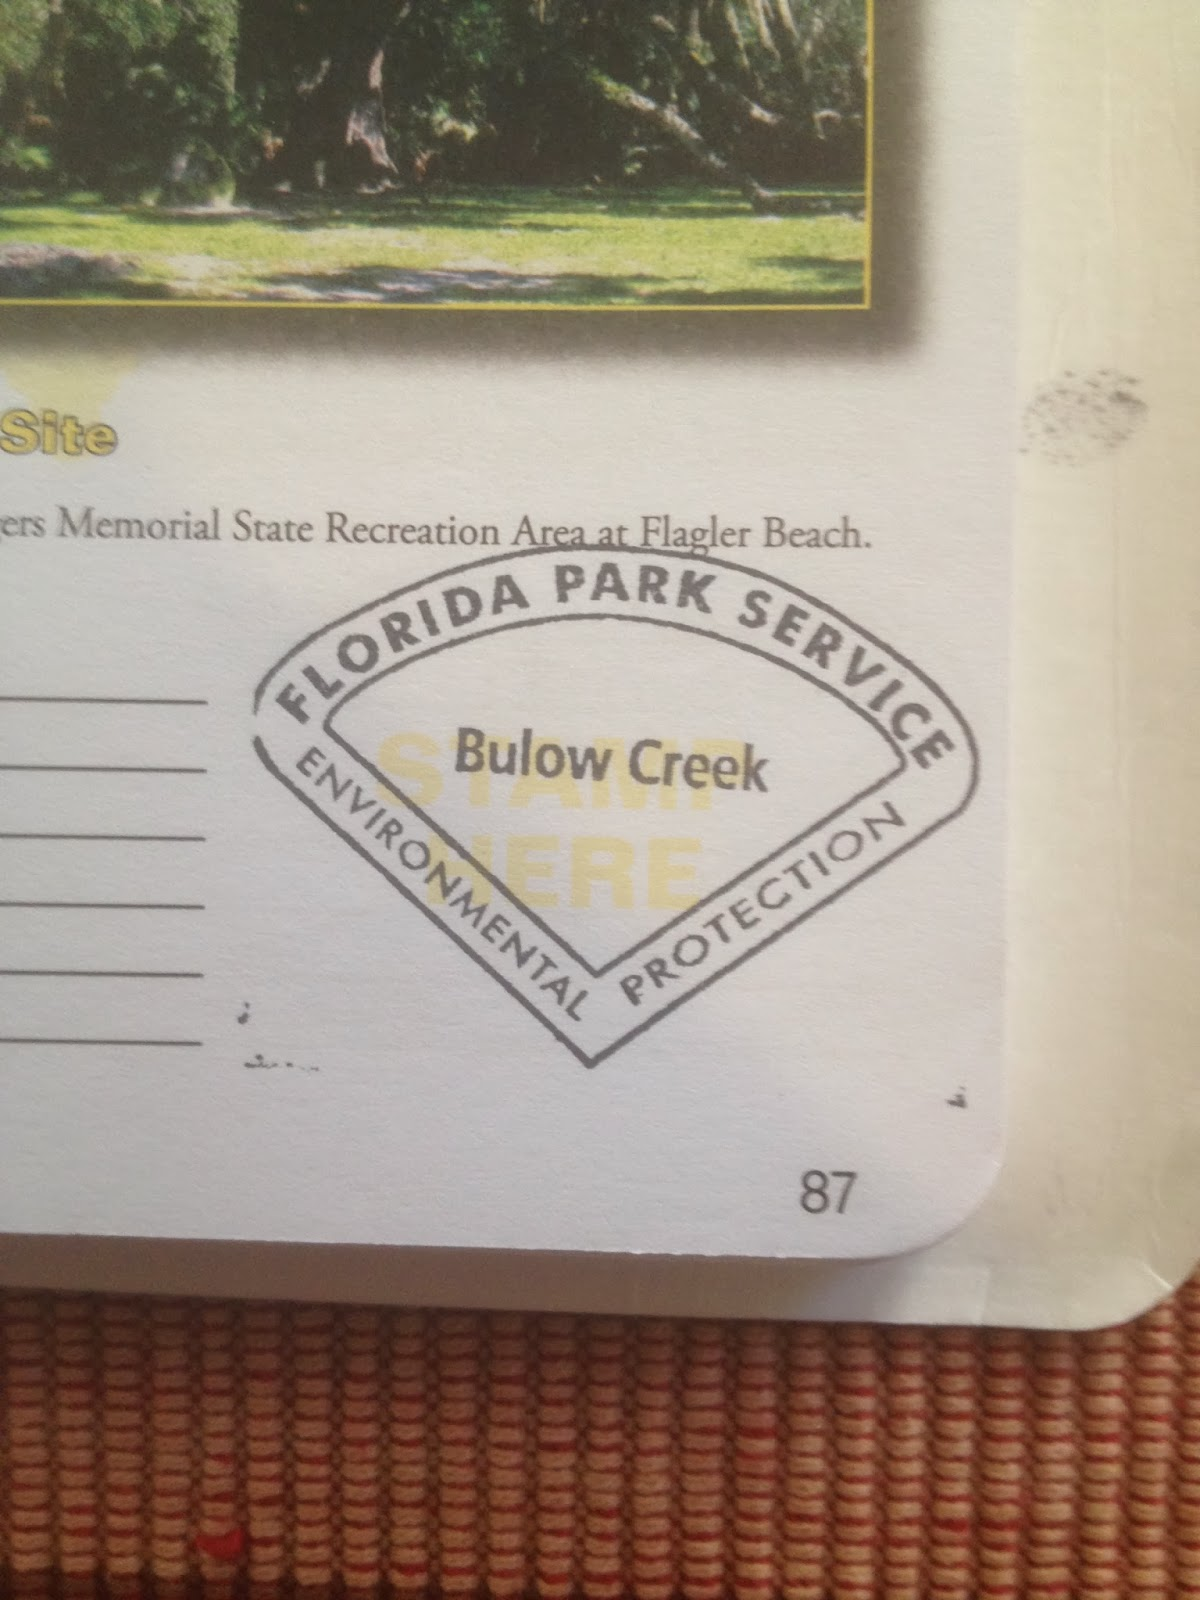 An Example Of A Florida Park Service Passport Stamp For One Of Its Units  Watching The Looking At How To Get